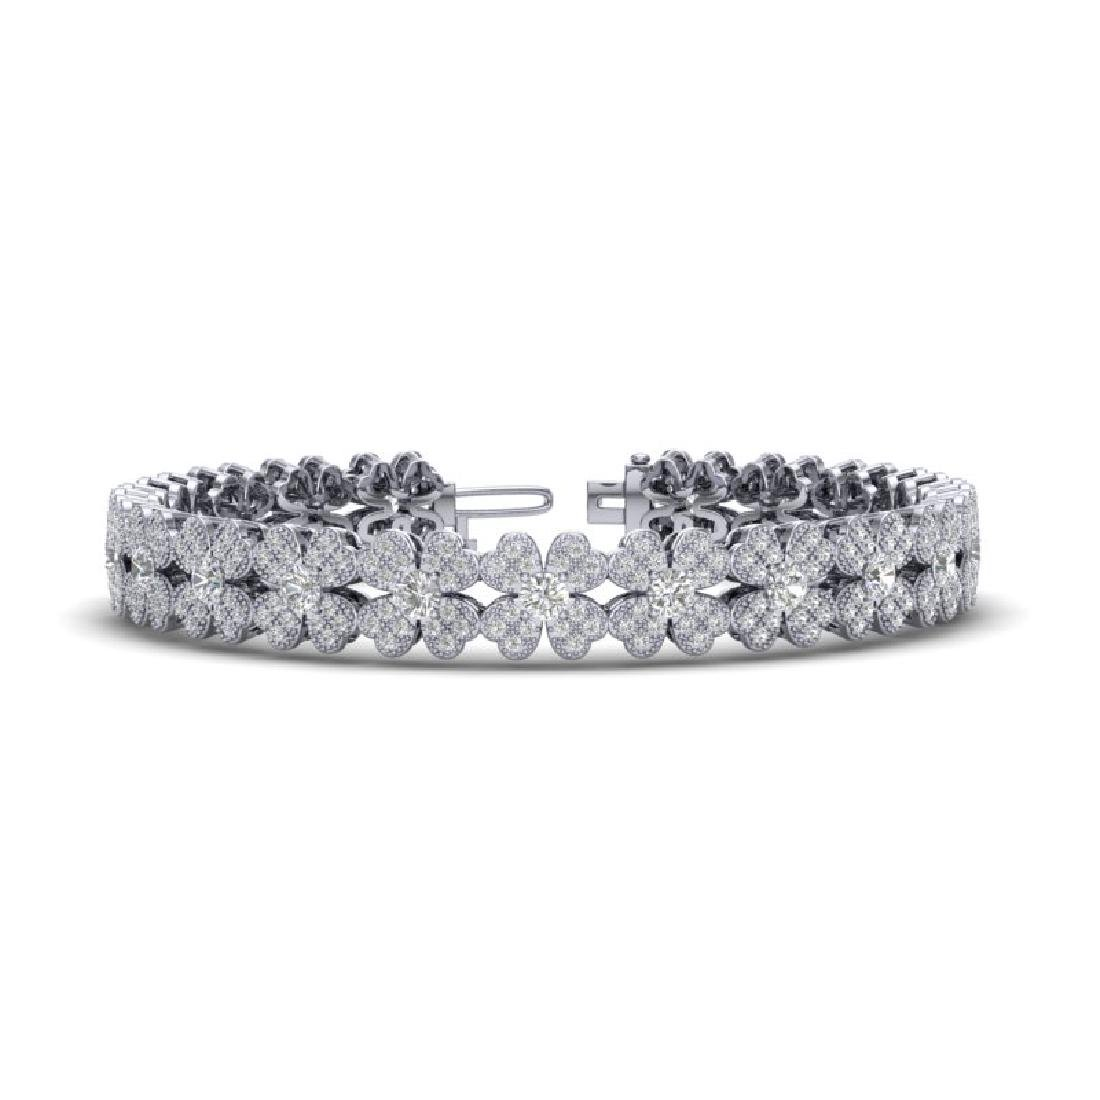 5.50 CTW Micro Pave VS/SI Diamond Bracelet 18K White